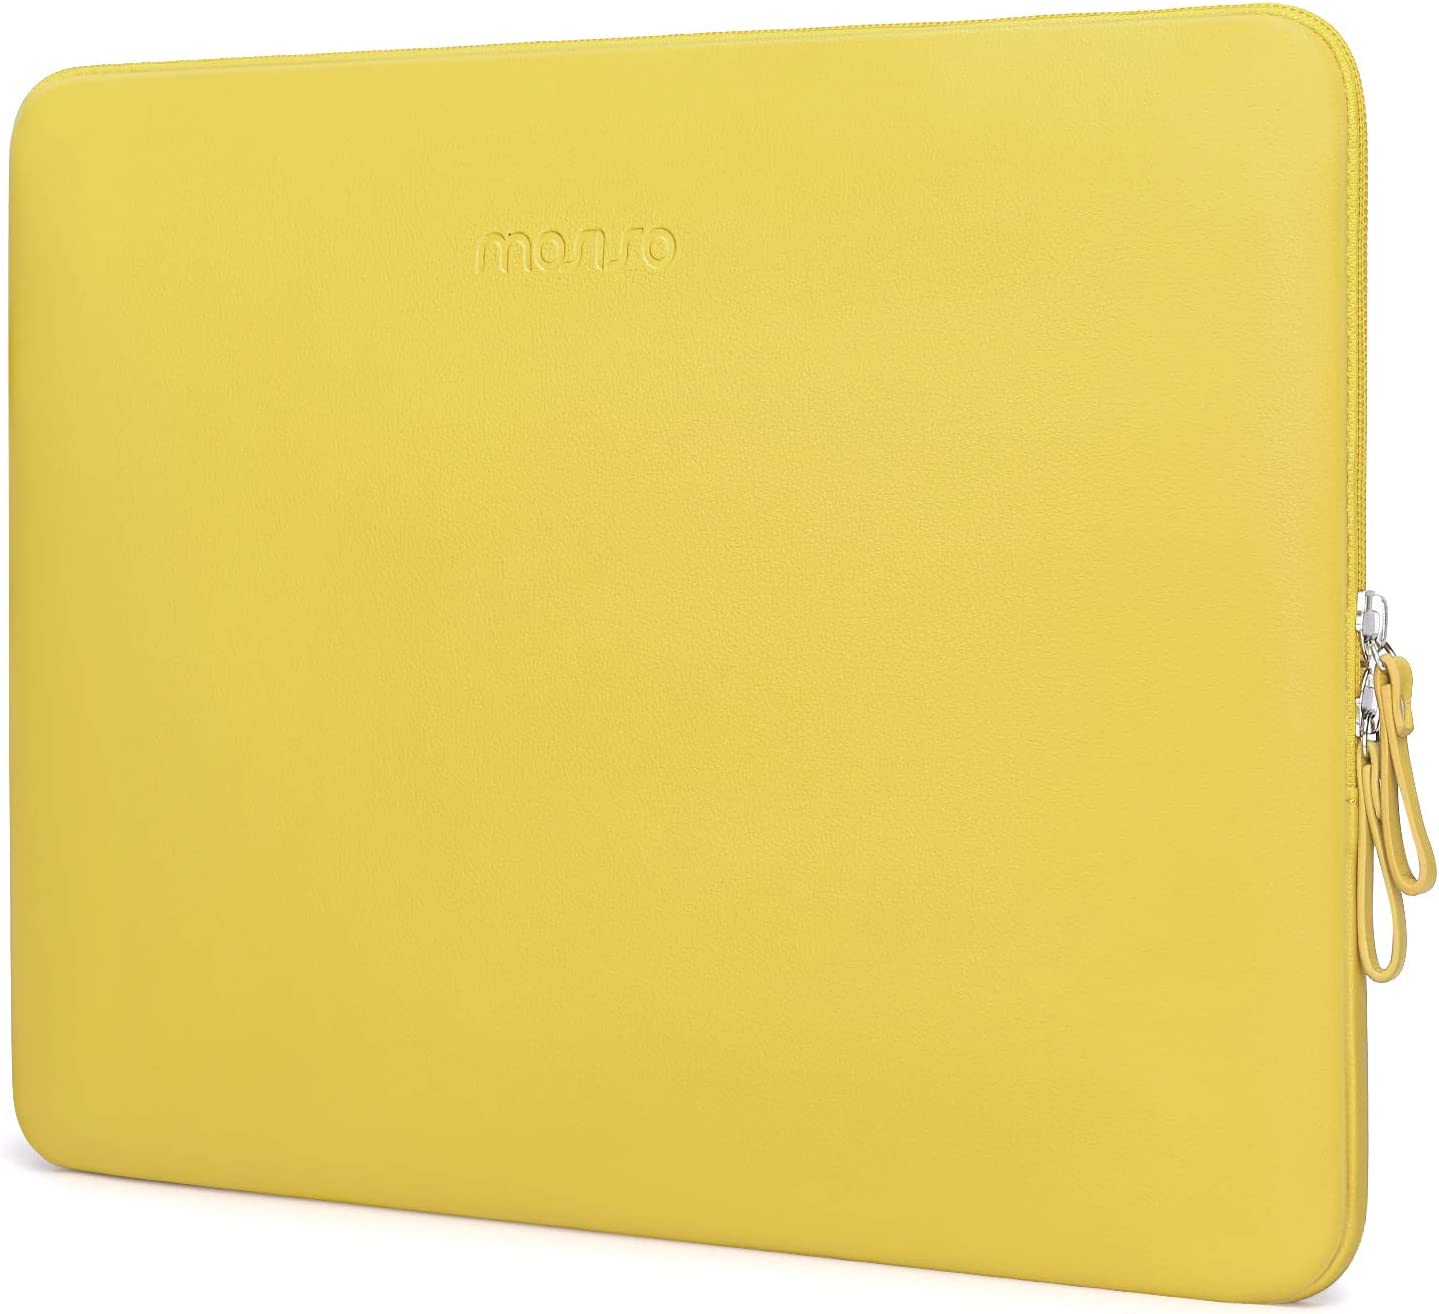 MOSISO Laptop Sleeve Compatible with 13-13.3 Inch MacBook Air/MacBook Pro Retina/2019 2018 Surface Laptop 3/2/Surface Book 2, PU Leather Super Padded Bag Waterproof Protective Case, Yellow